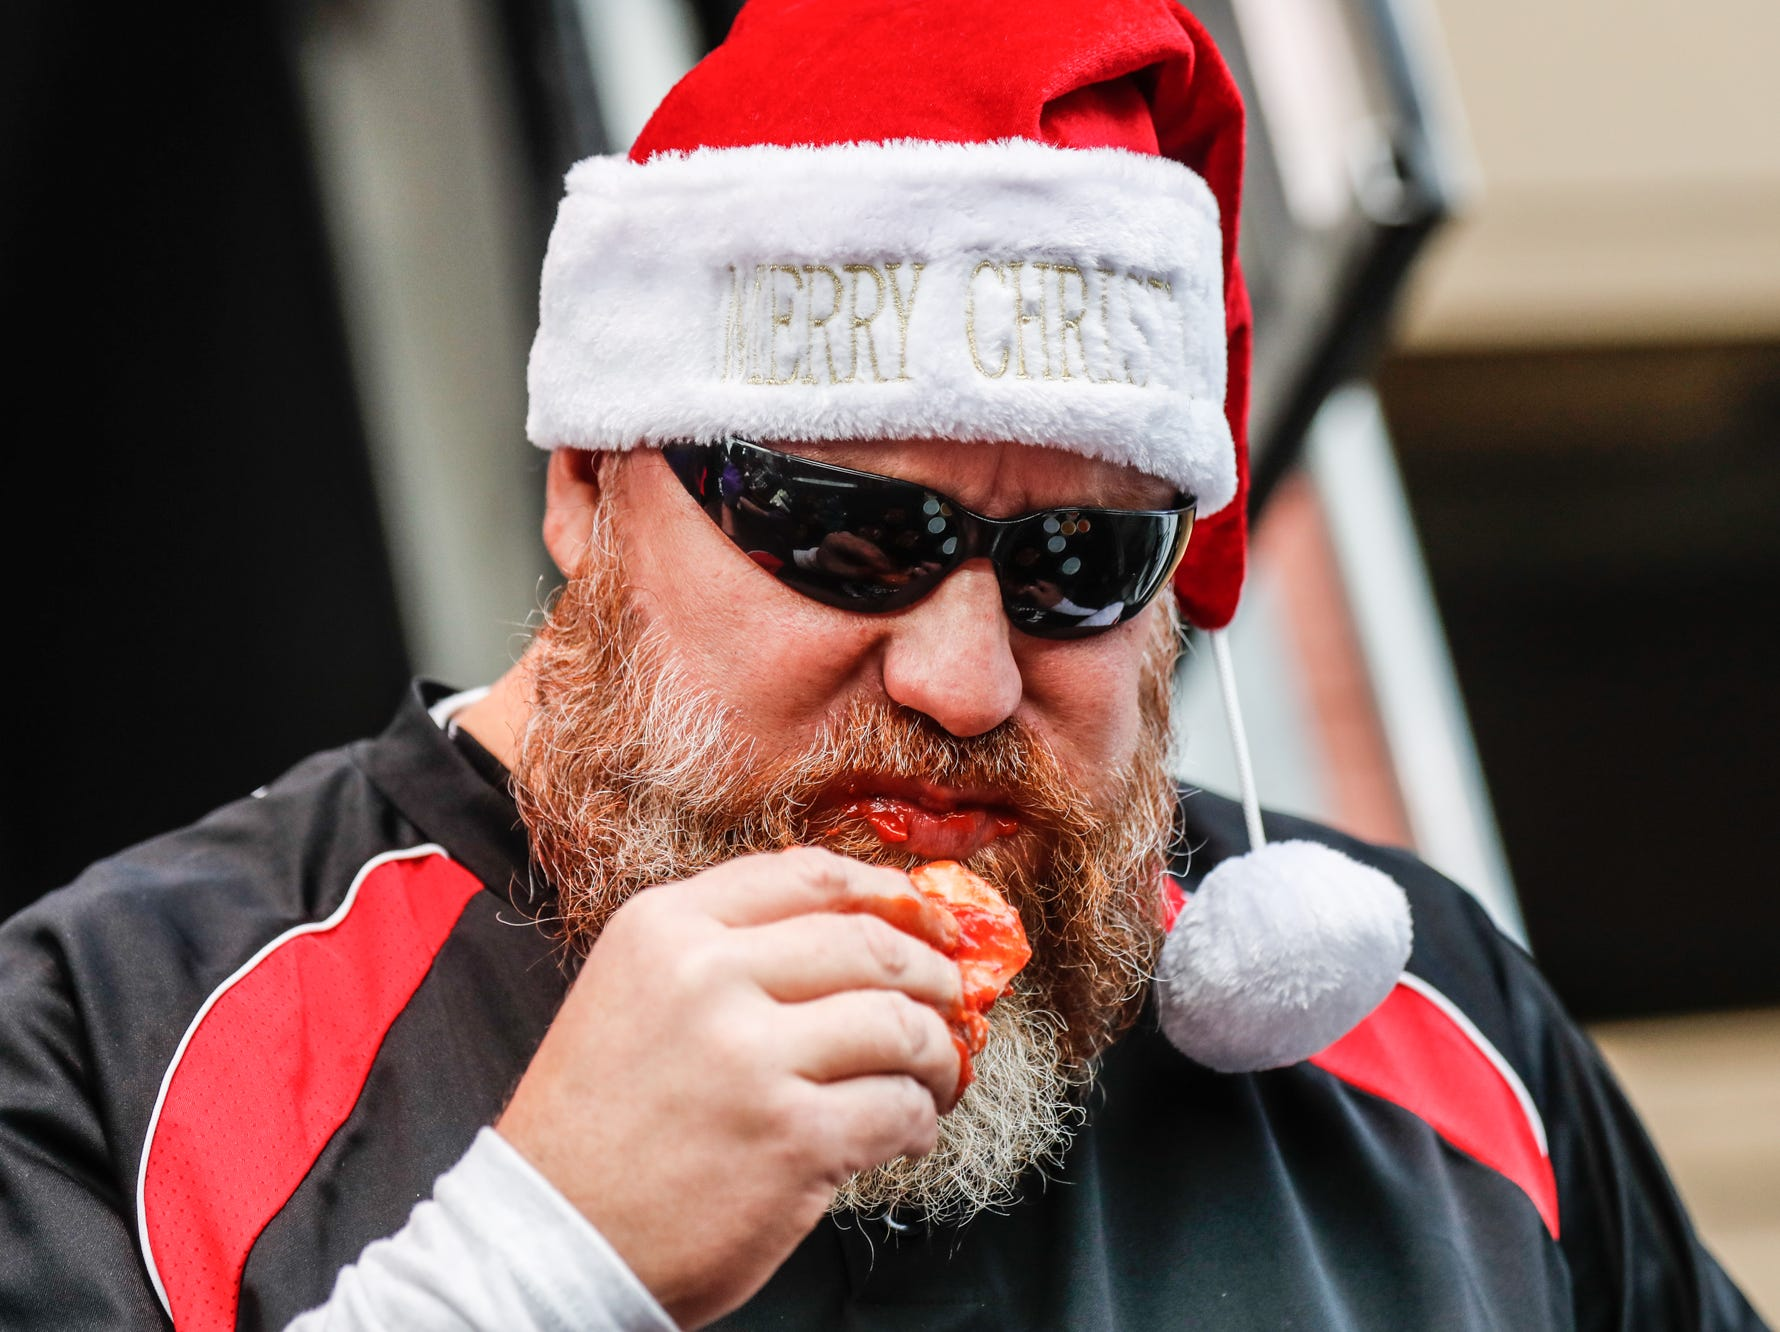 Major League Eater, Matthew Raible competes in the sixth annual World Famous St. Elmo Shrimp Cocktail Eating Championship, held during the Meijer Tailgate Party on Georgia St. in Indianapolis on Saturday, Dec. 1, 2018.